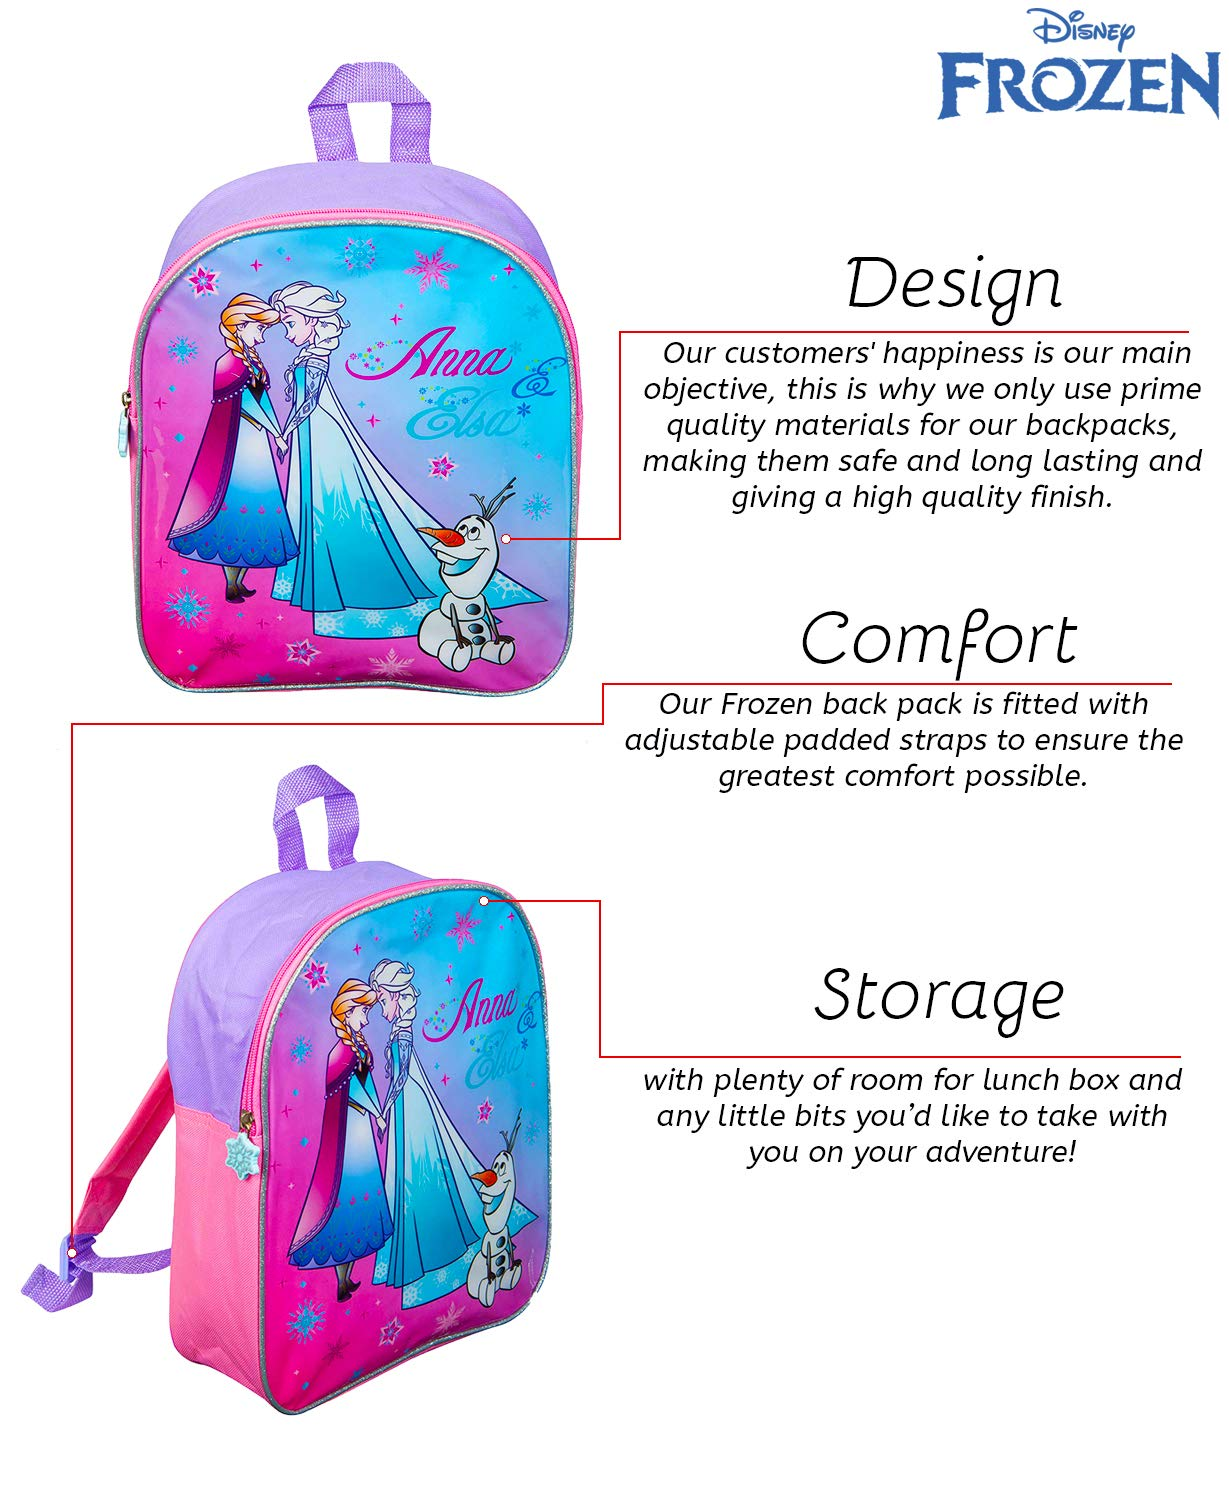 205832f2e6 Disney Frozen School Bag for Girl Kids Travel Bag Anna Elsa Olaf Junior  Girls Backpack Childrens Luggage Pink Rucksack  Amazon.co.uk  Luggage